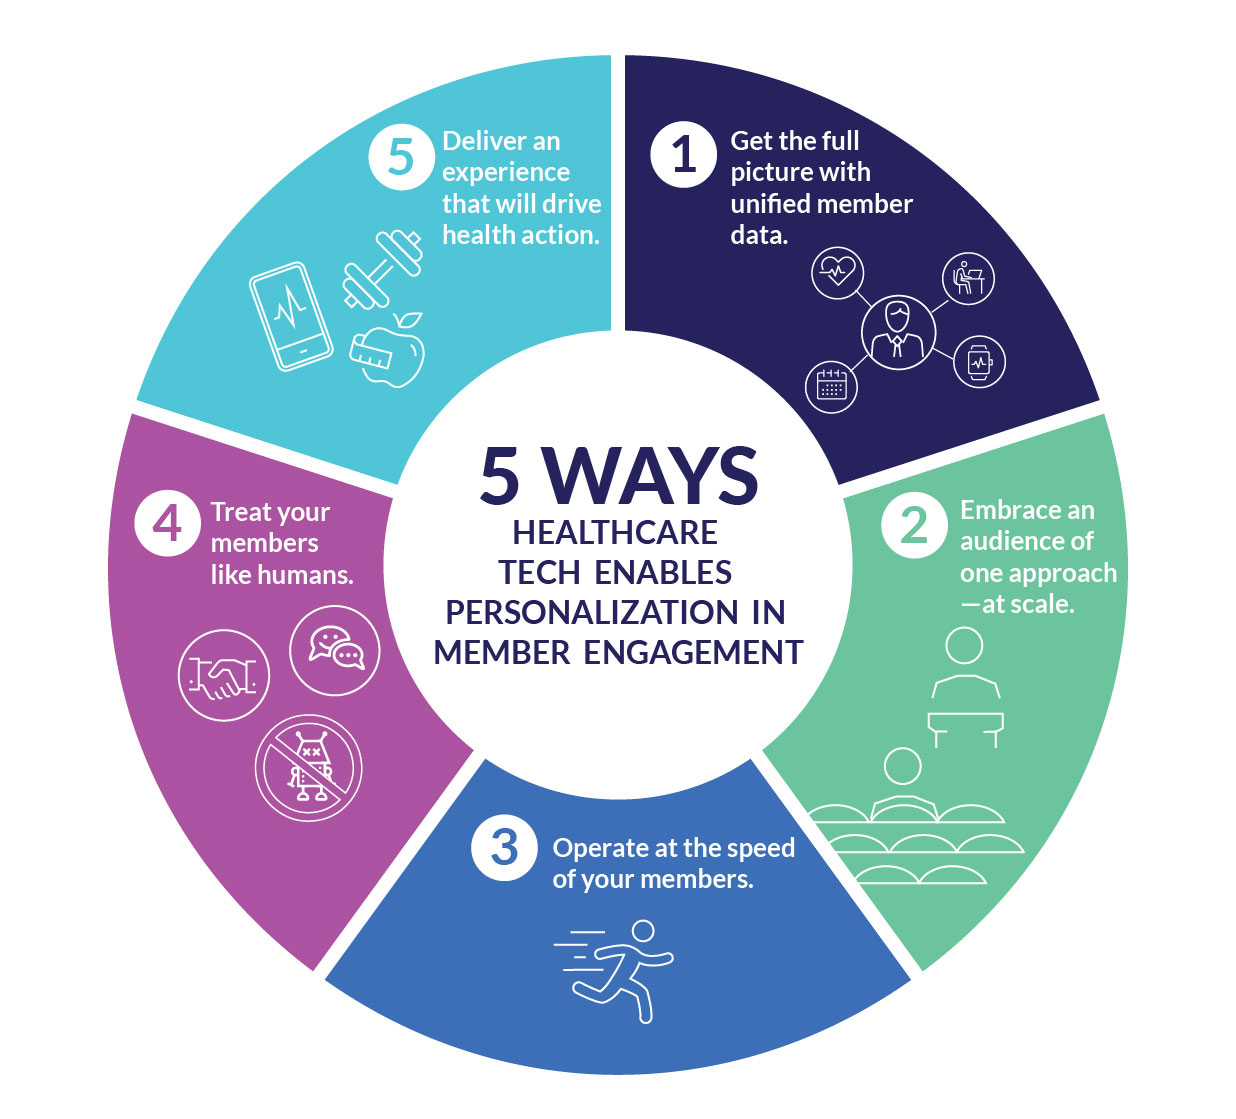 5 Ways Healthcare Tech Enables Personalized Member Engagement